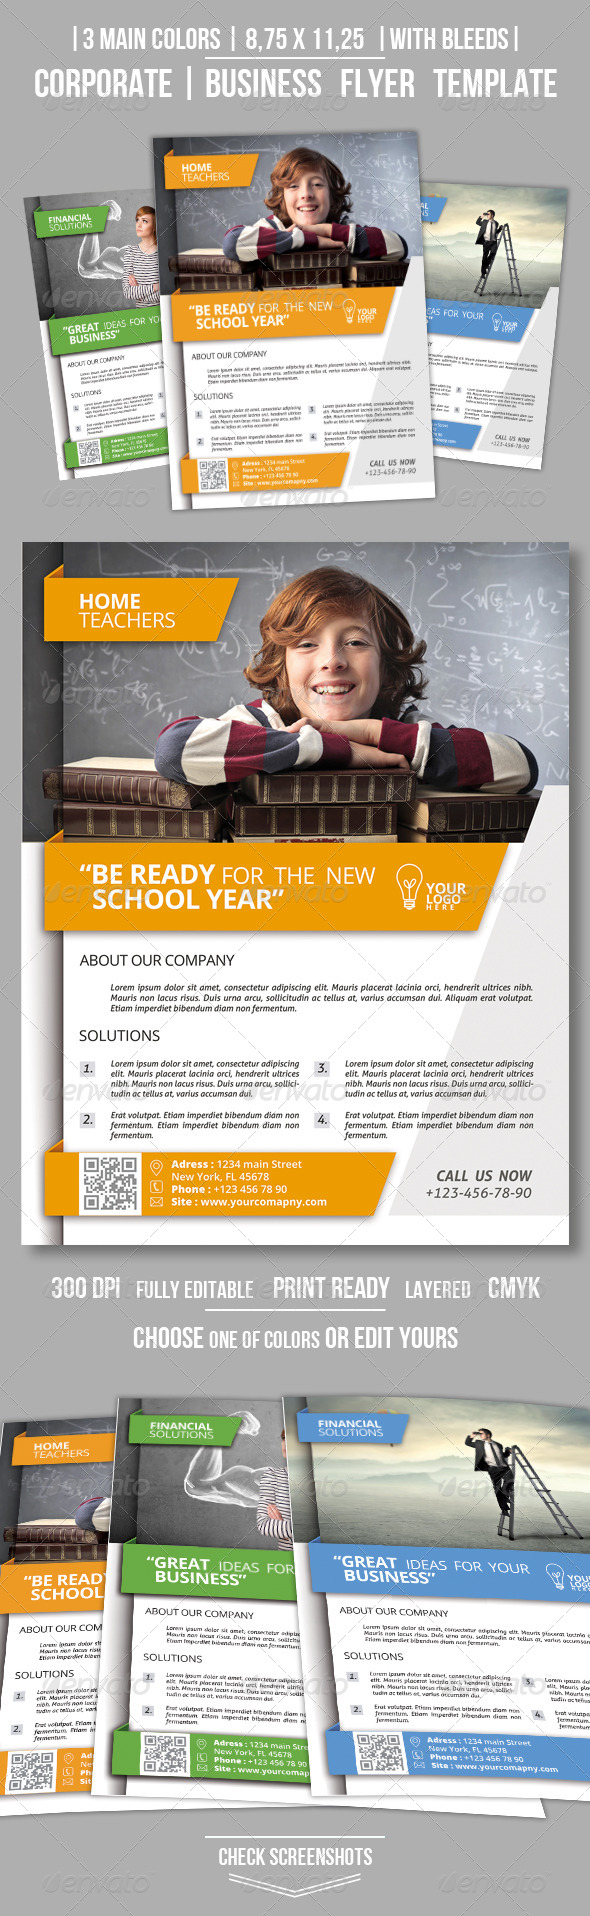 GraphicRiver Clean Corporate Business Flyer 8624380